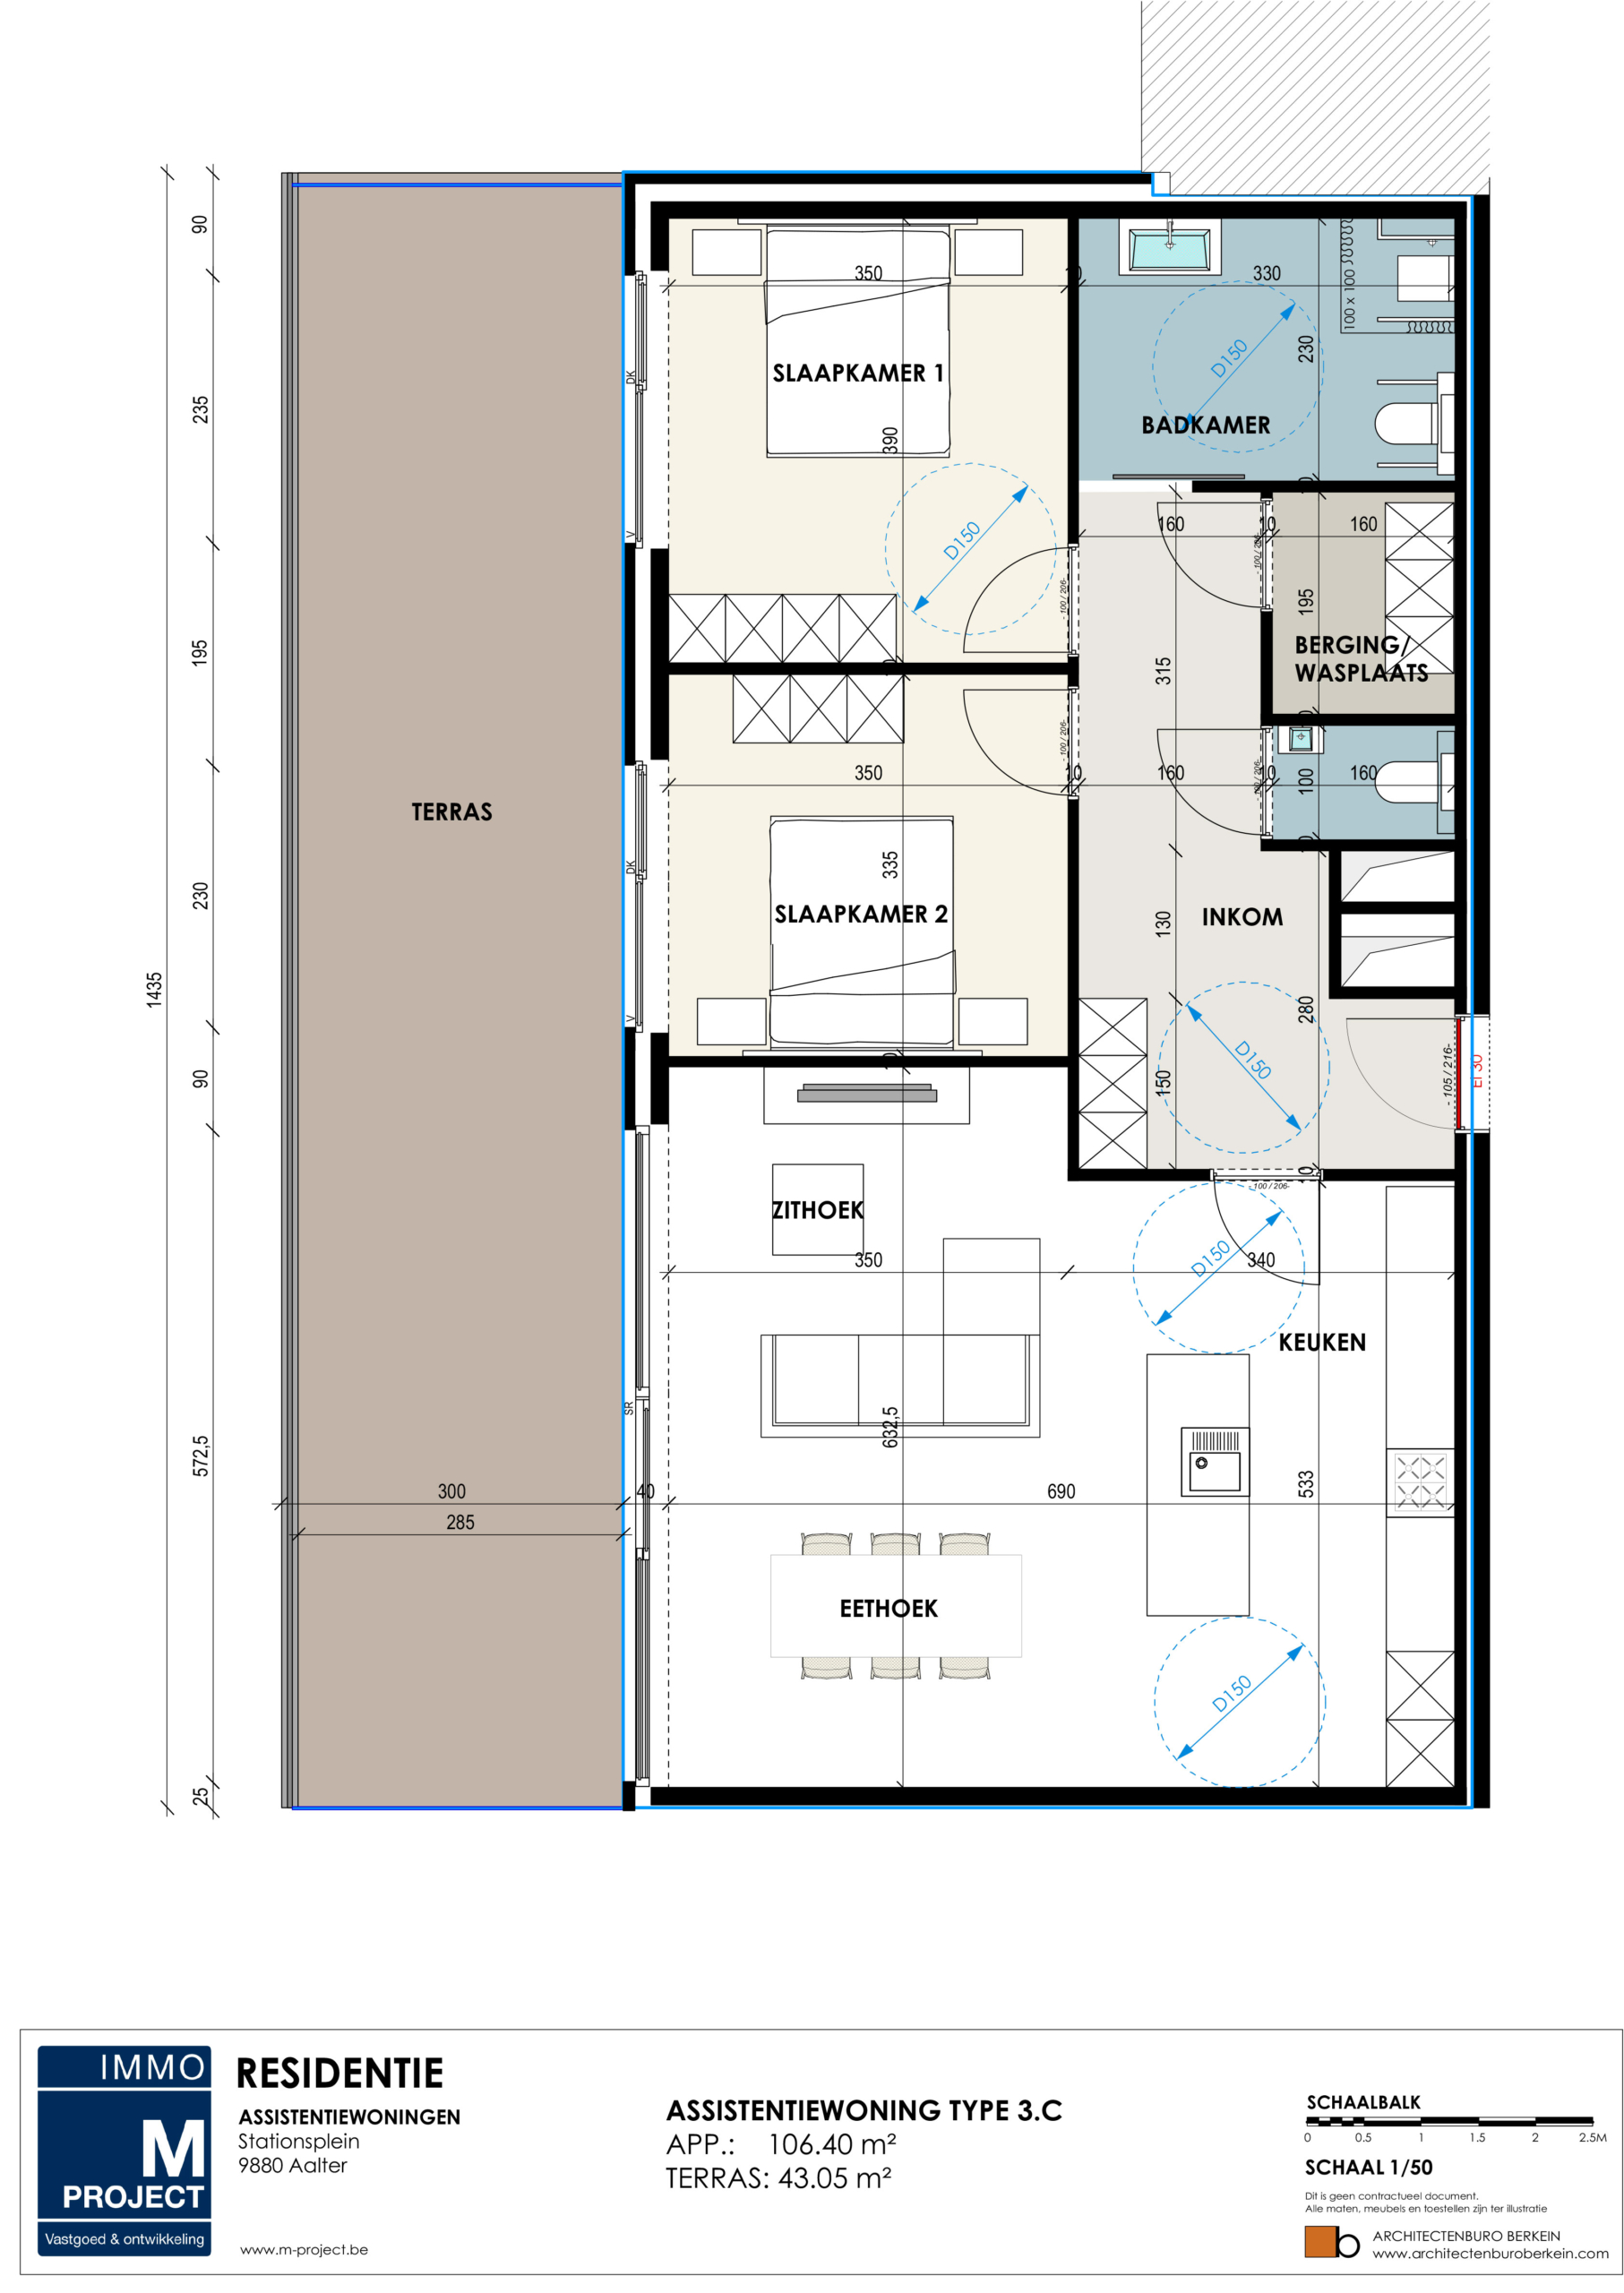 Assistentiewoningen Residentie Academie - appartement type 3C